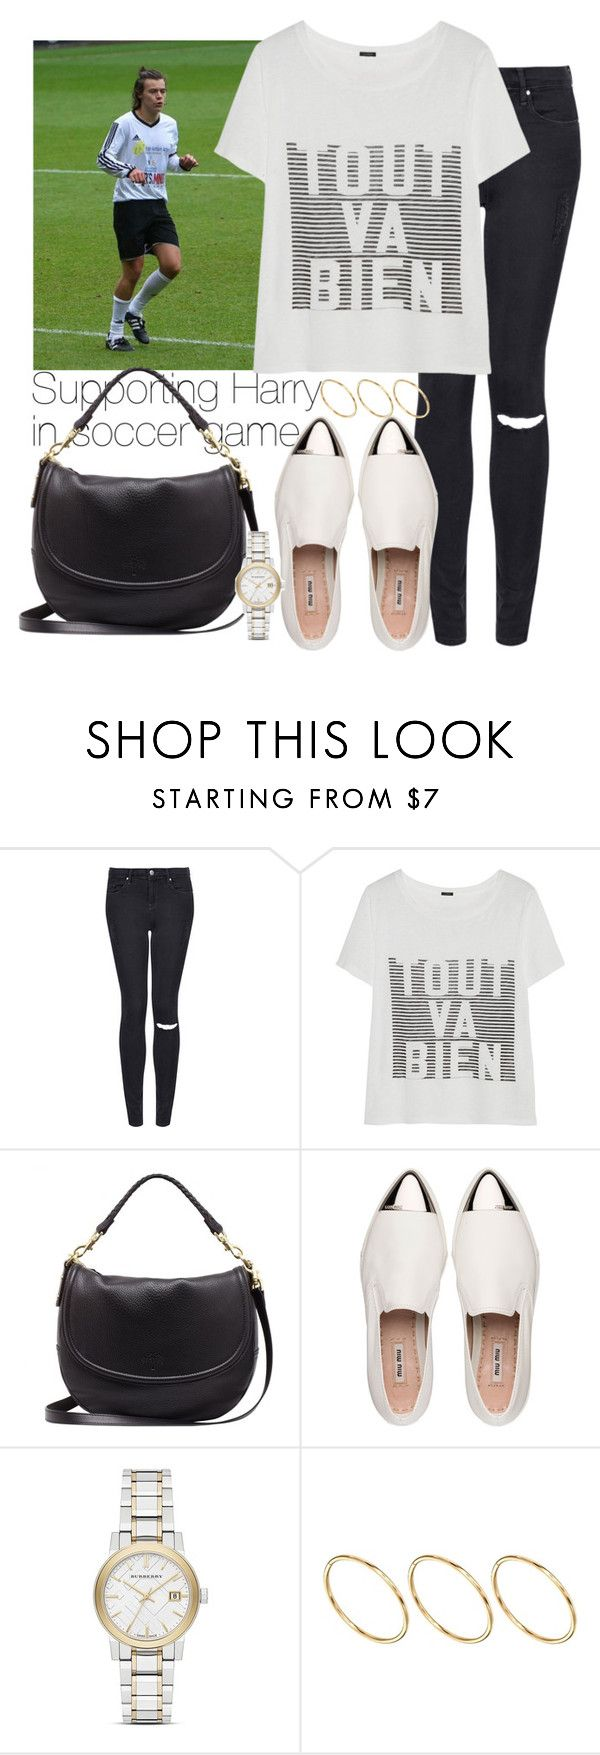 """Supporting Harry in soccer game"" by wkus ❤ liked on Polyvore featuring Topshop, J.Crew, Mulberry, Miu Miu, Burberry and ASOS"